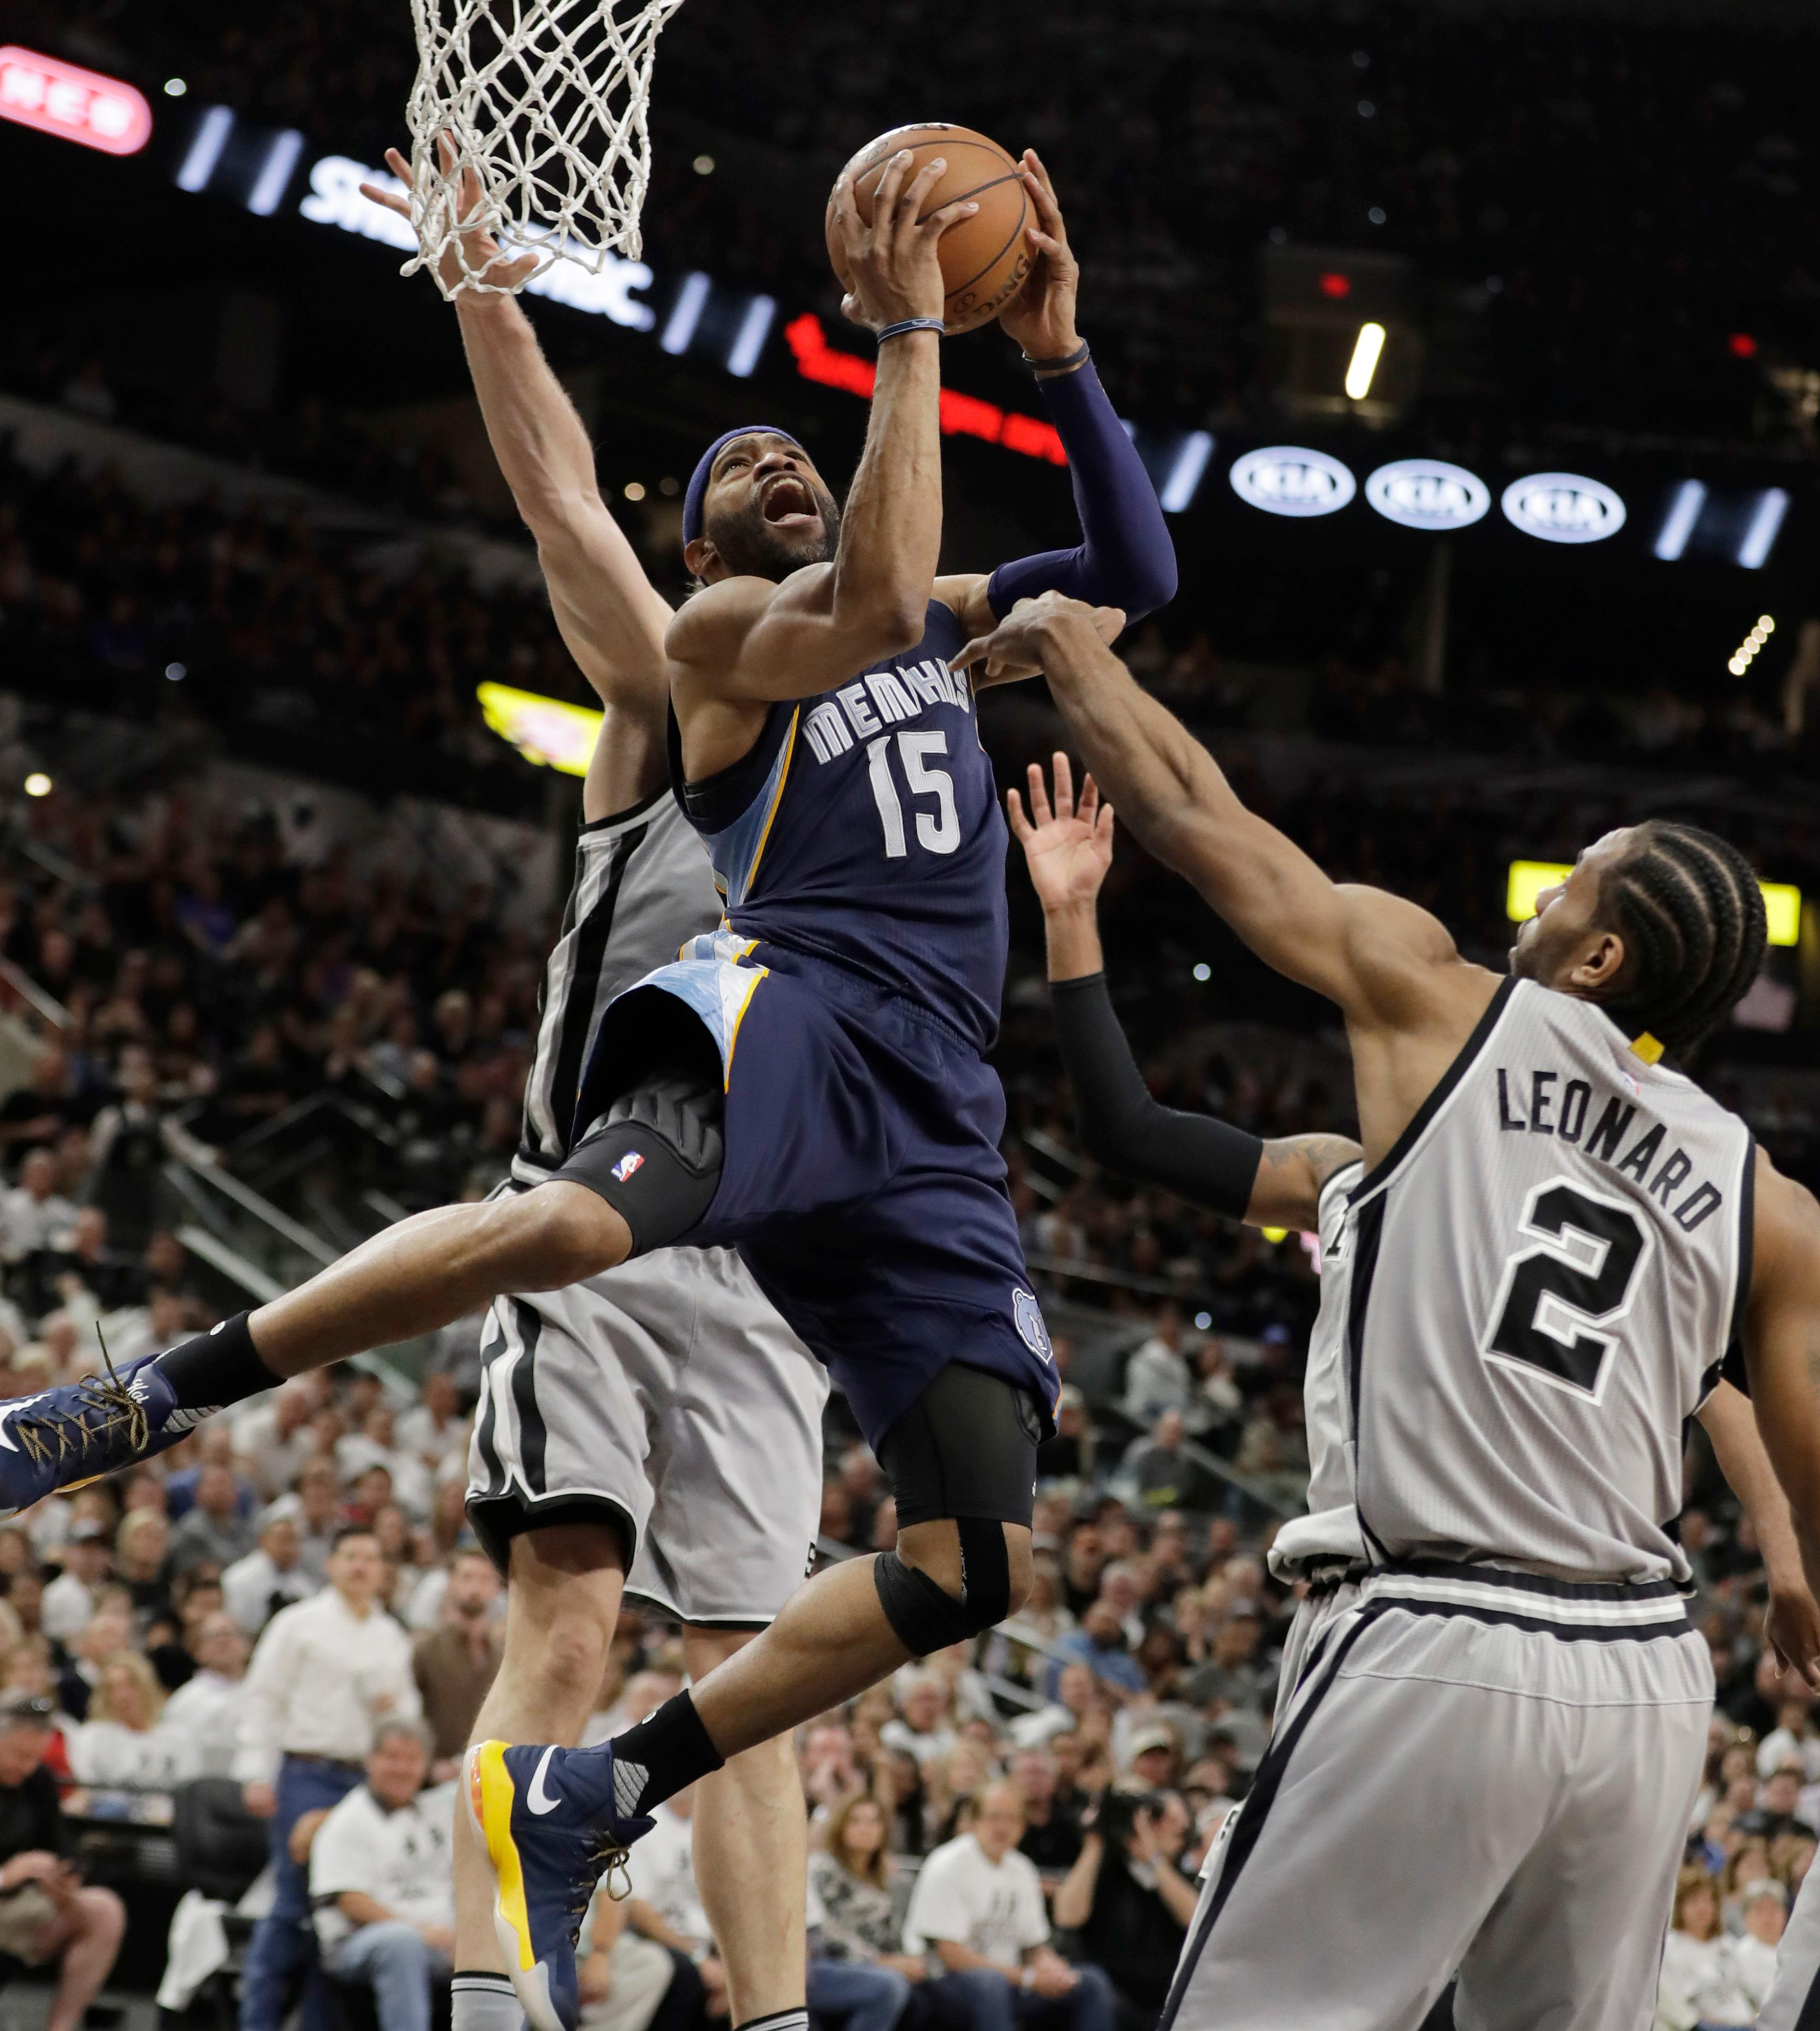 Memphis Grizzlies guard Vince Carter (15) shoots over San Antonio Spurs forward Kawhi Leonard (2) during the first half of Game 1 in a first-round NBA basketball playoff series, Saturday, April 15, 2017, in San Antonio. (AP Photo/Eric Gay)